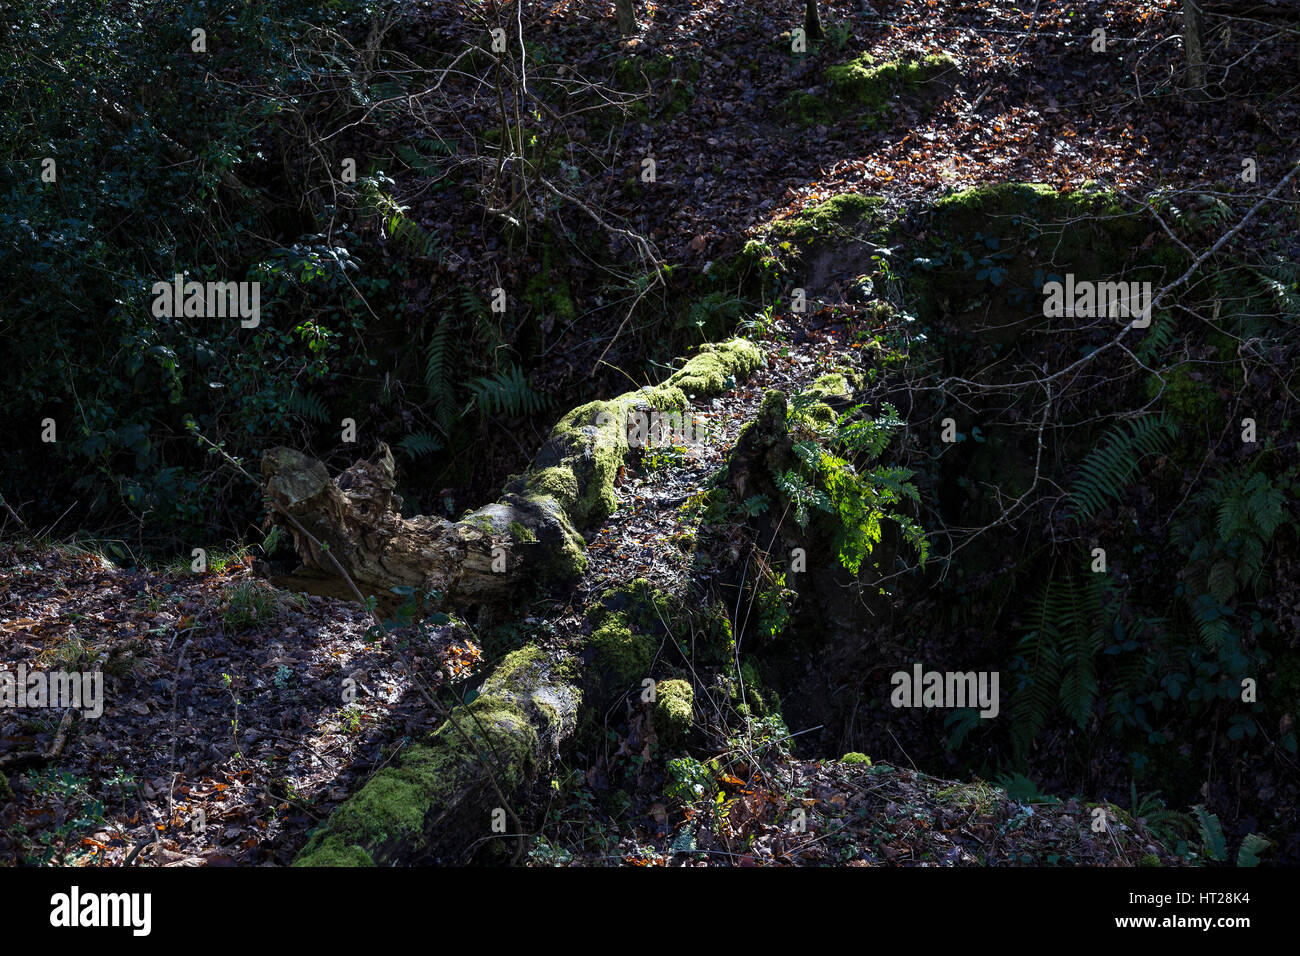 Path formed by fallen tree in woods for woodland animals such as Deer Badgers foxes,copse, coppice, dense growth, - Stock Image